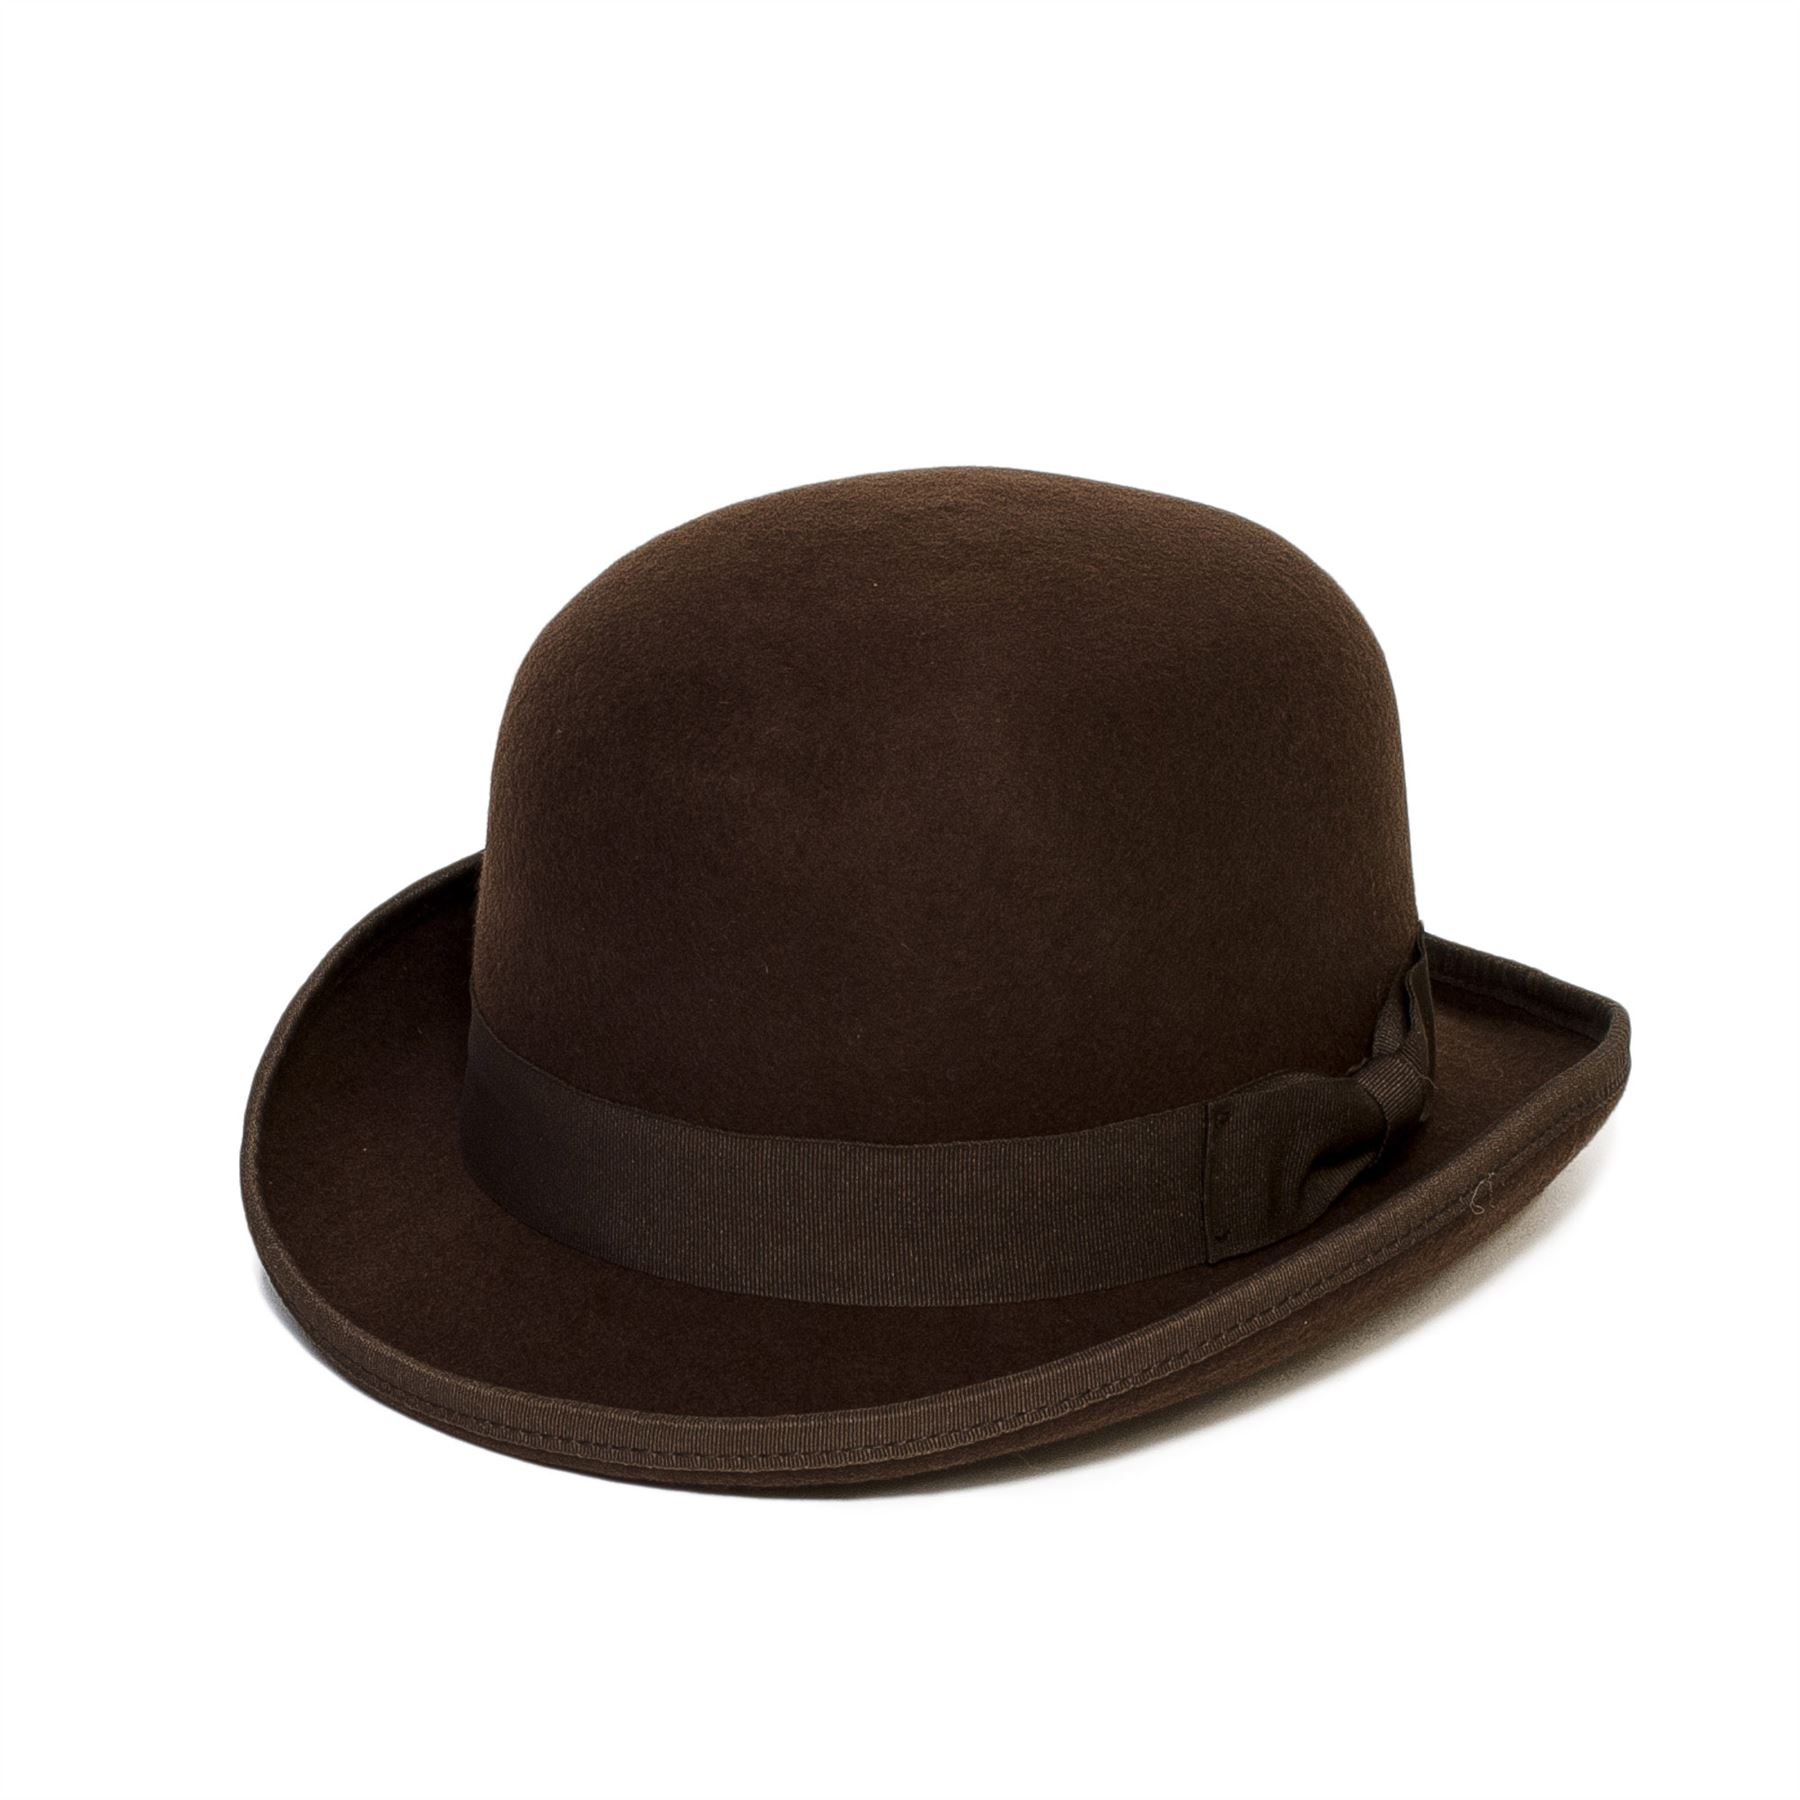 Is The Bowler Hat Making A Comeback? The Read The Journal 49